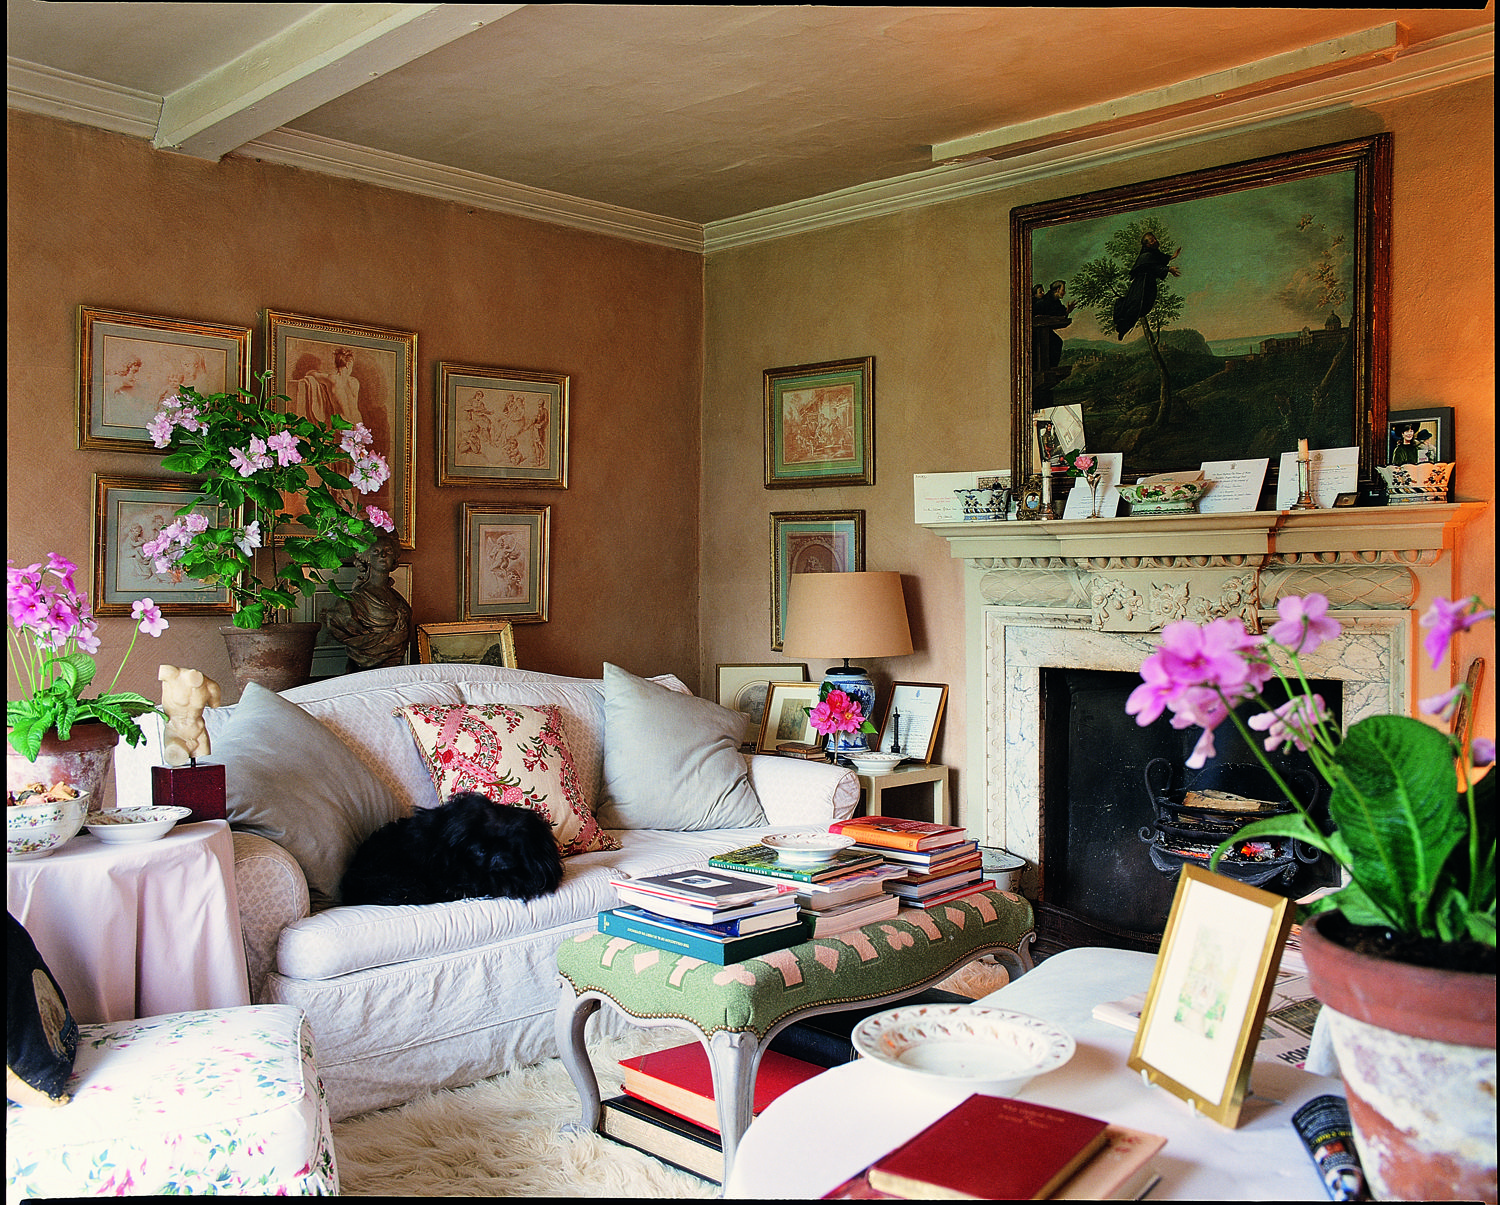 Hunting Decor For Living Room The Hunting Lodge Nicky Haslams Country House Pink Pinterest